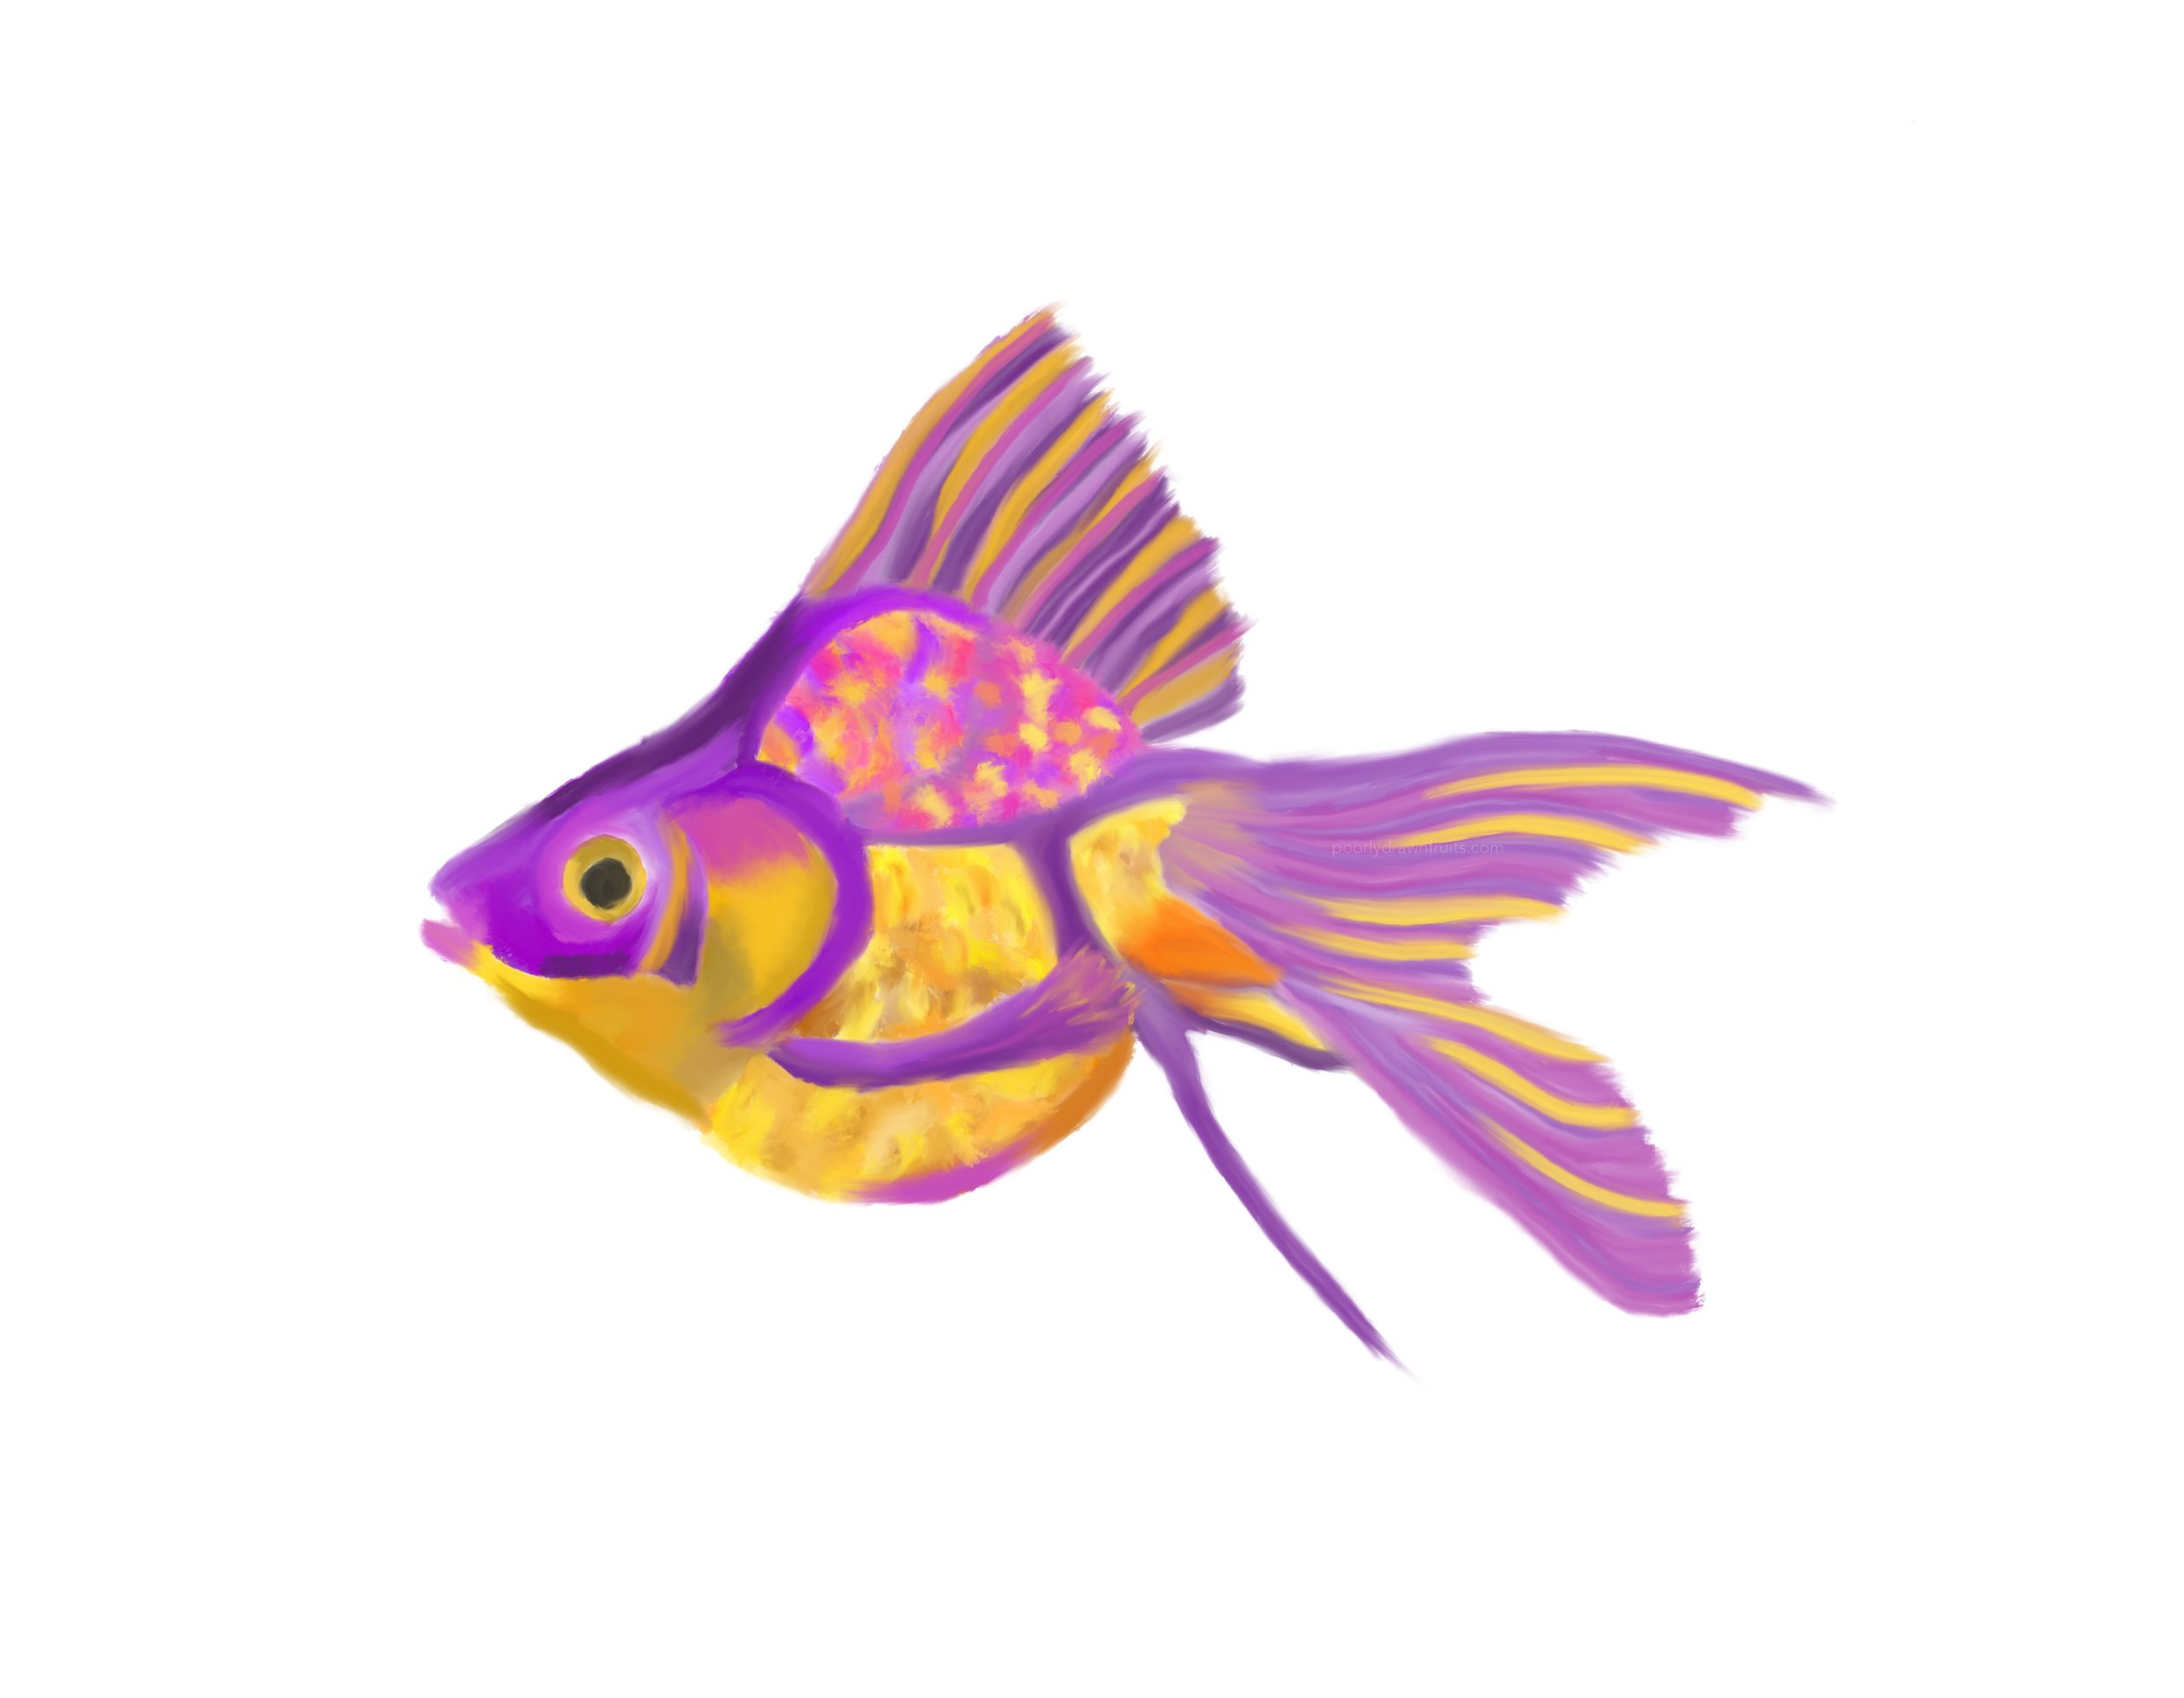 goldfish, purple fish, scales, painting, drawing, ipad, purple and gold